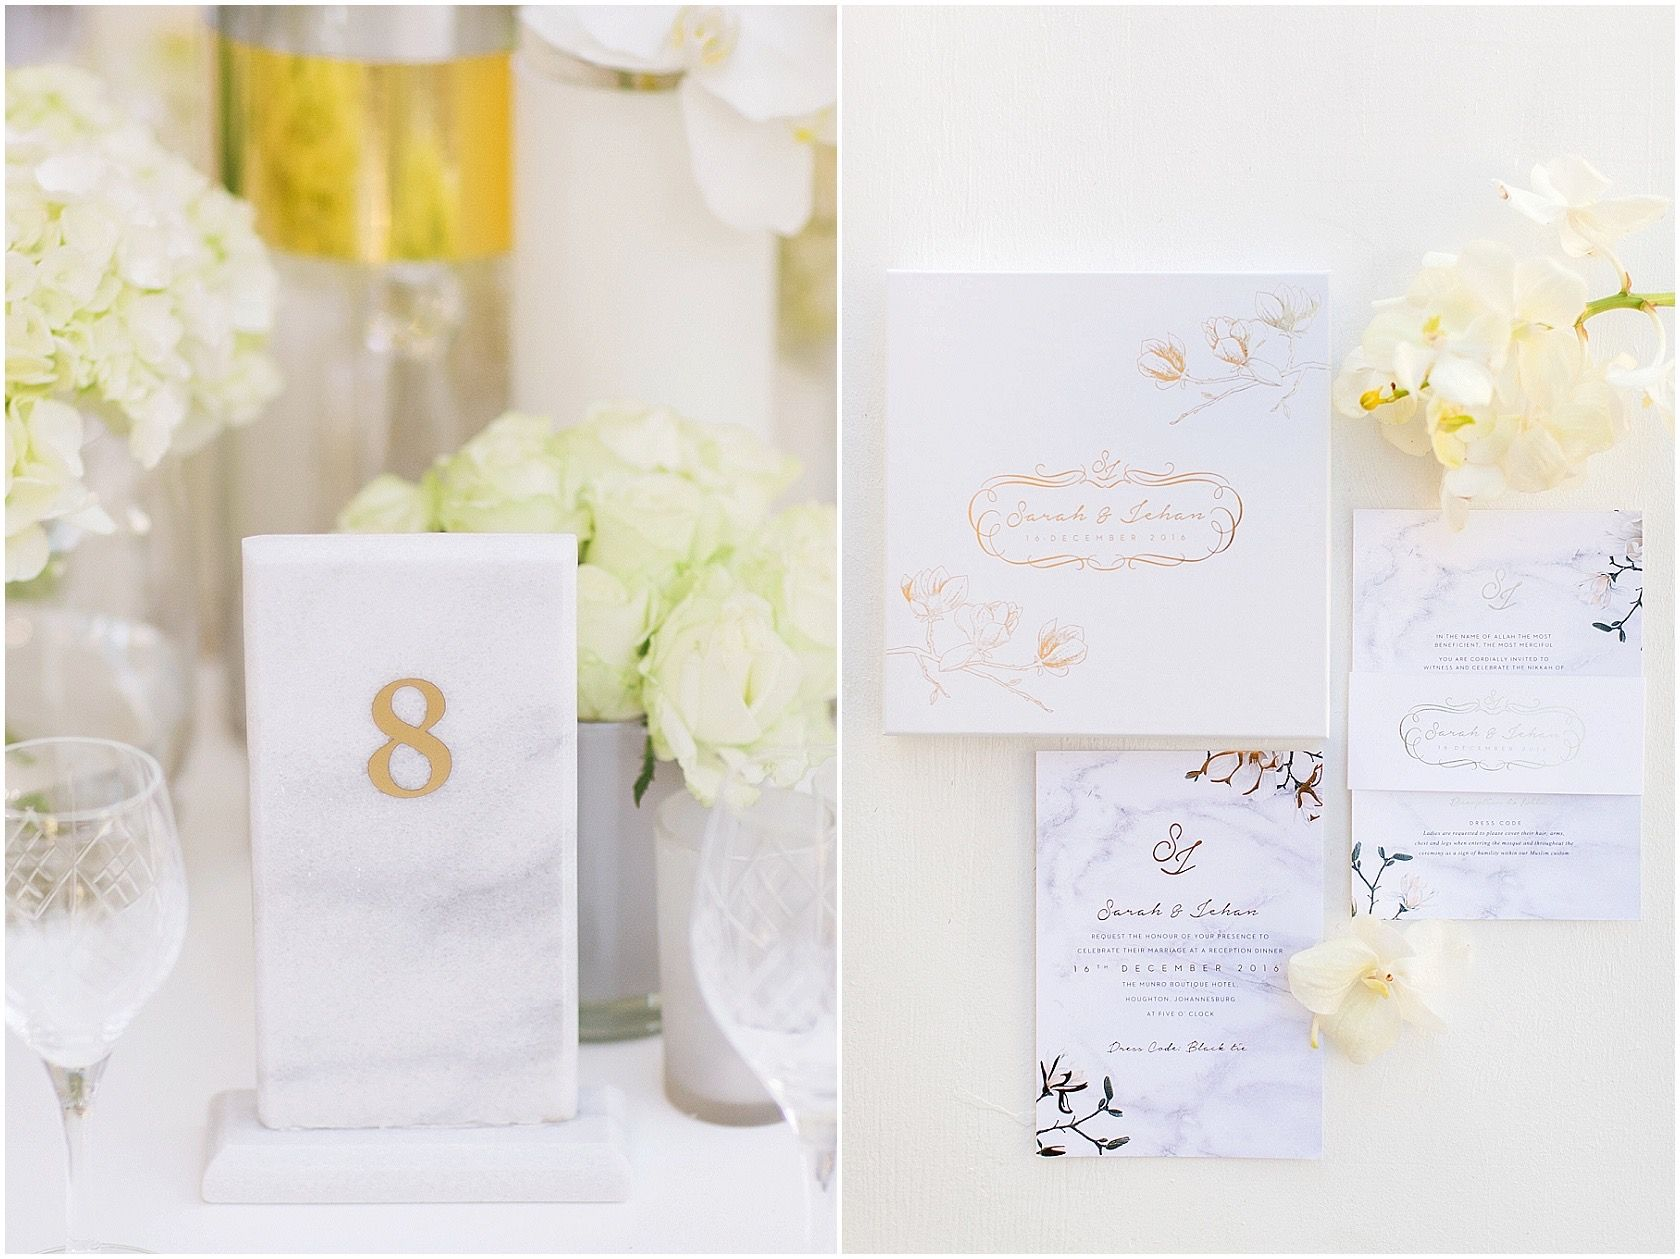 diy wedding invitations kits south africa%0A Explore Wedding Stationery Inspiration and more